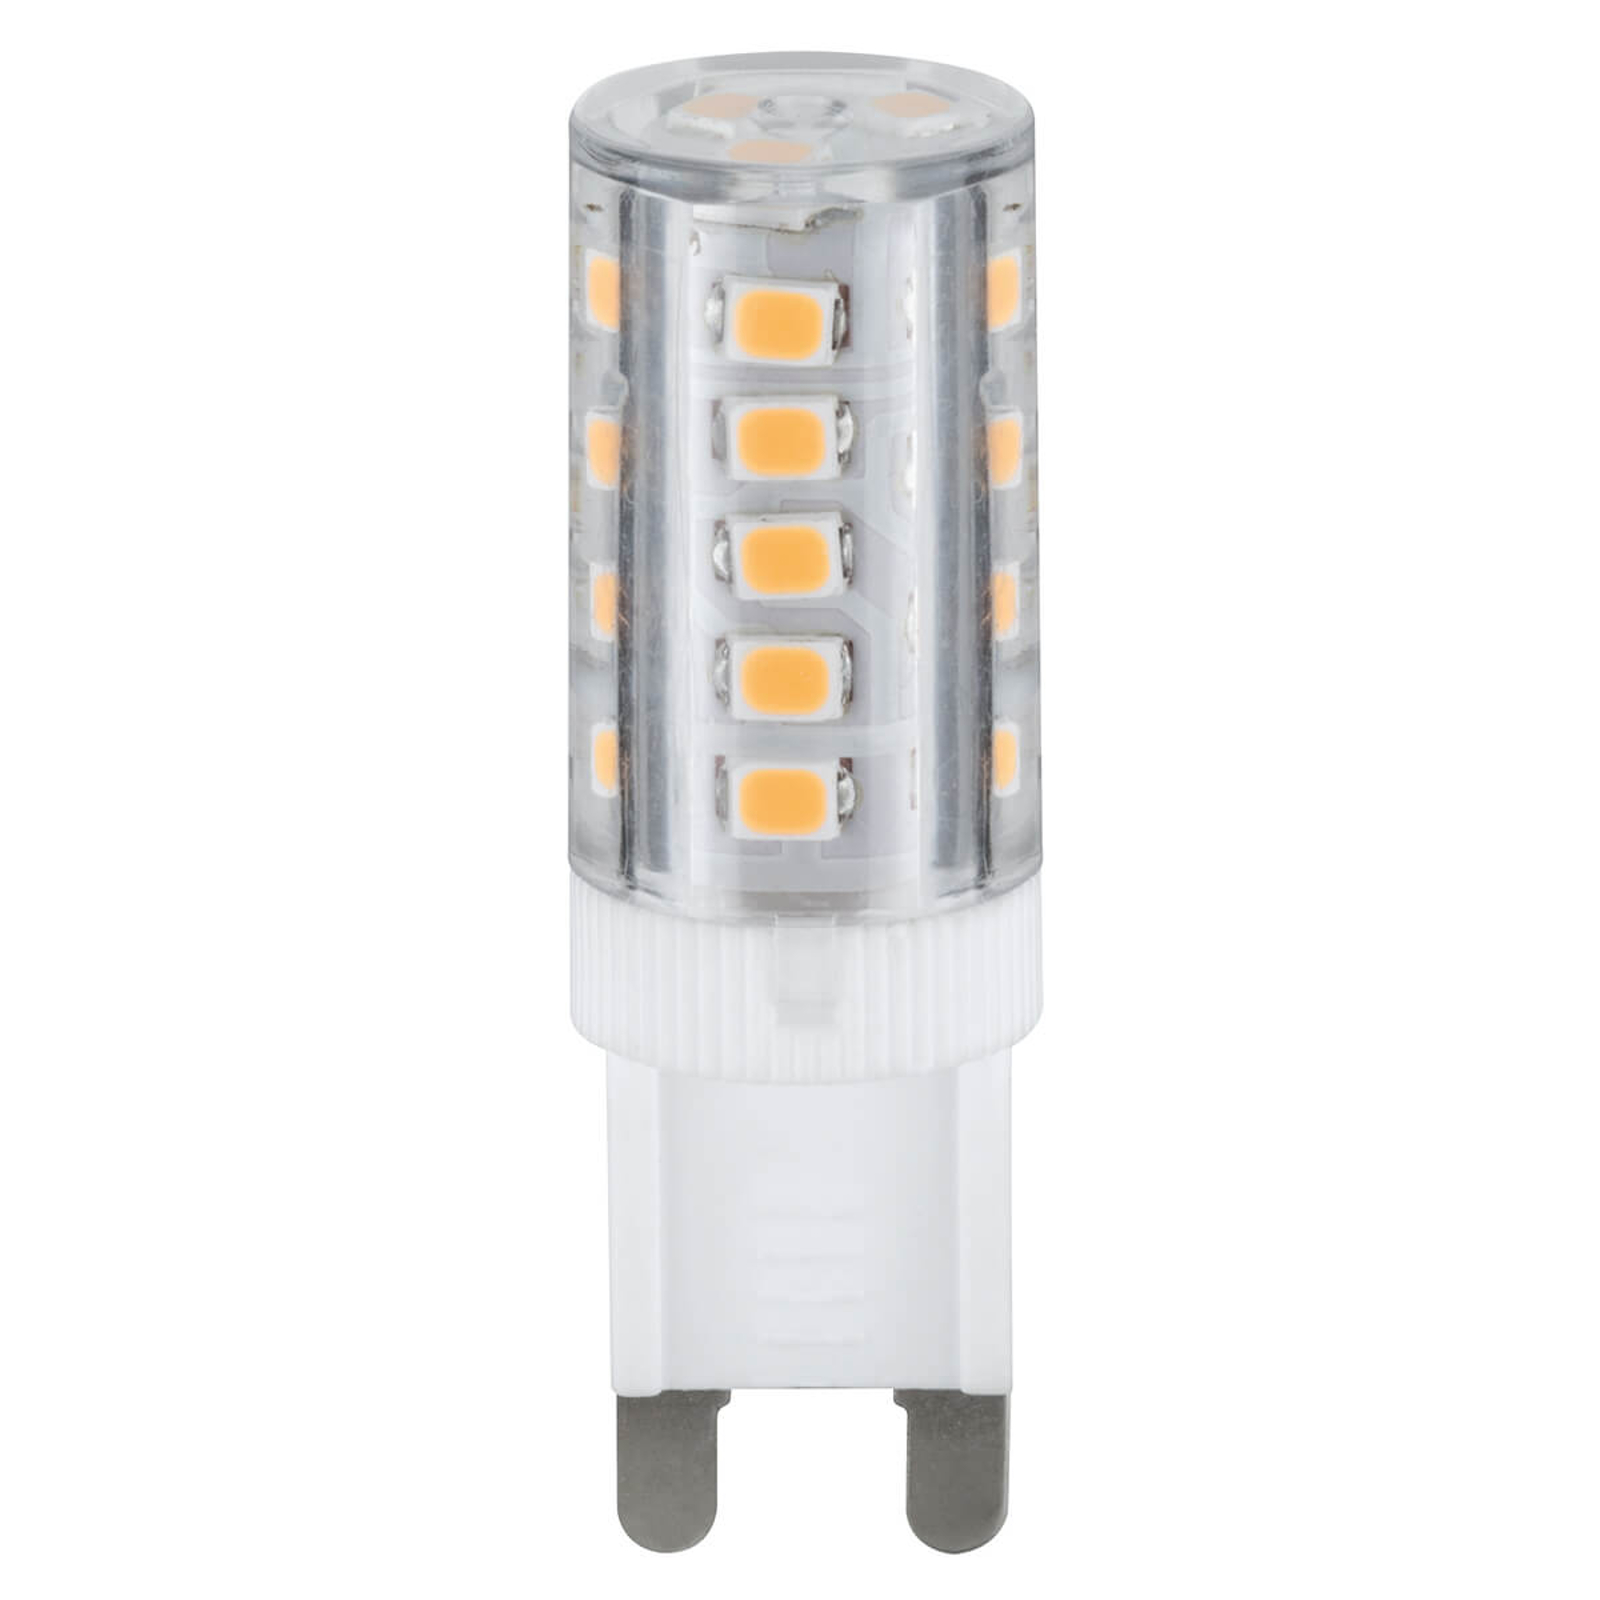 G9 3 W 827 ampoule à broche LED dimmable